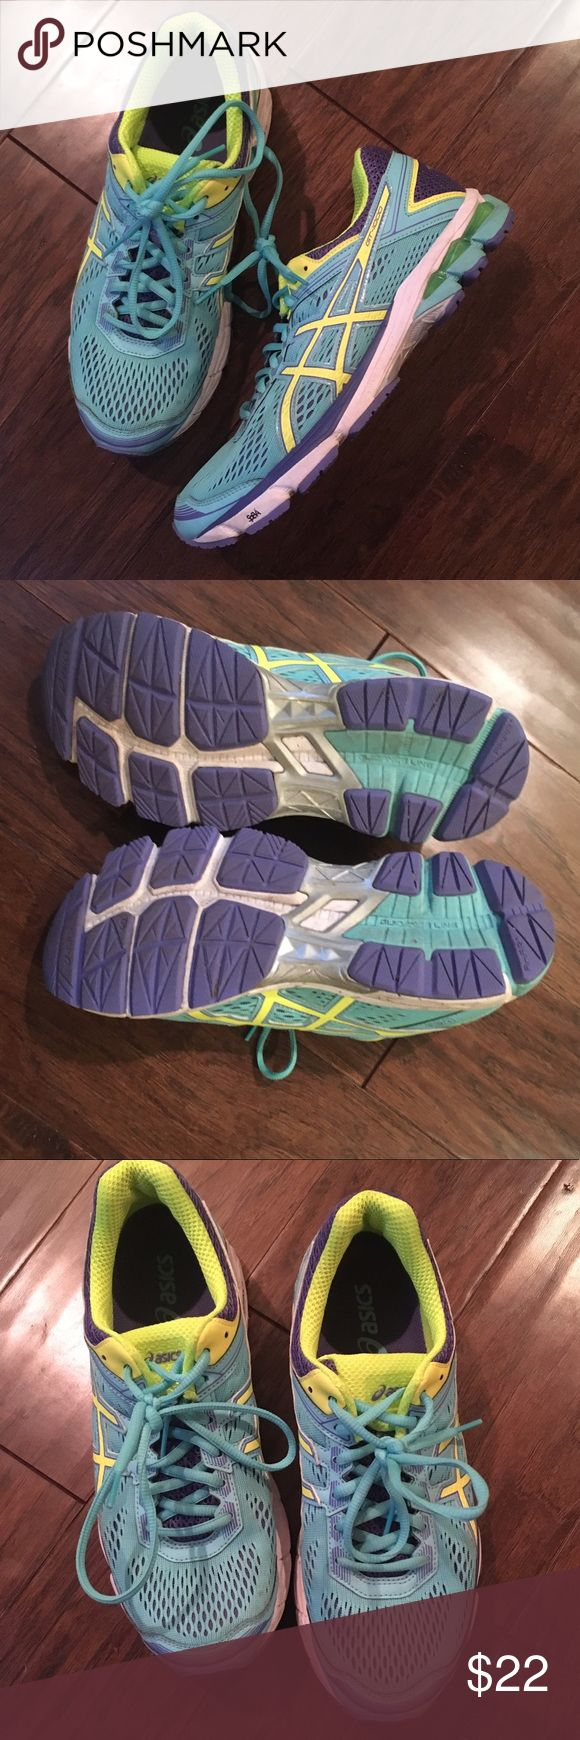 Asics neon blue running sneakers GT-1000 Asics neon running sneakers in perfect condition. Blue with neon green and purple details. Asics Shoes Sneakers